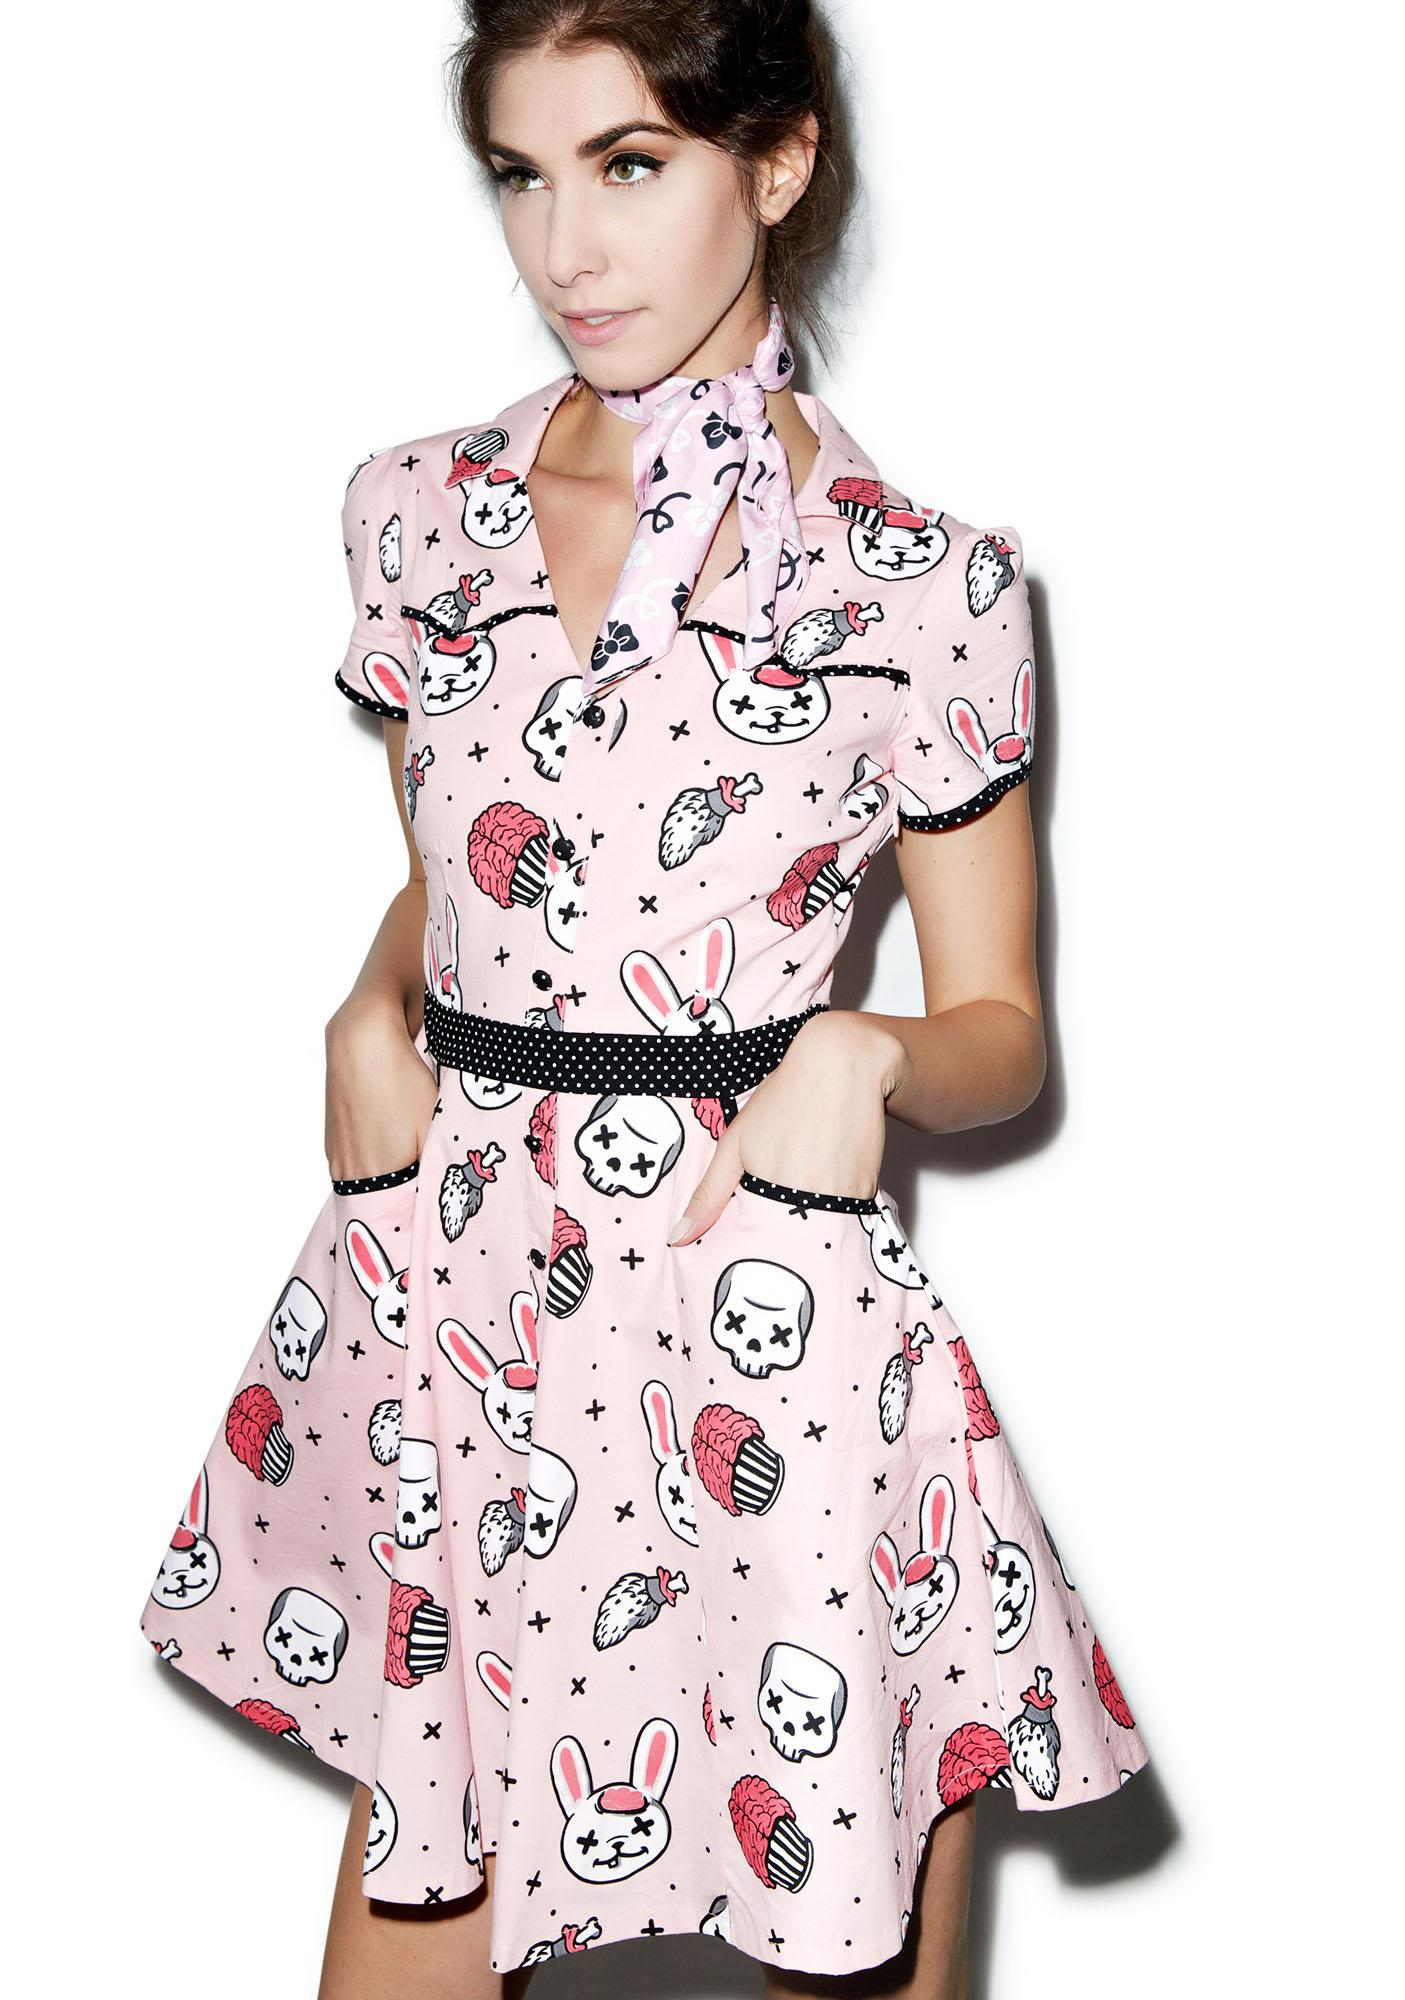 Sourpuss Clothing Hellbilly Zombie Bunnies Dress